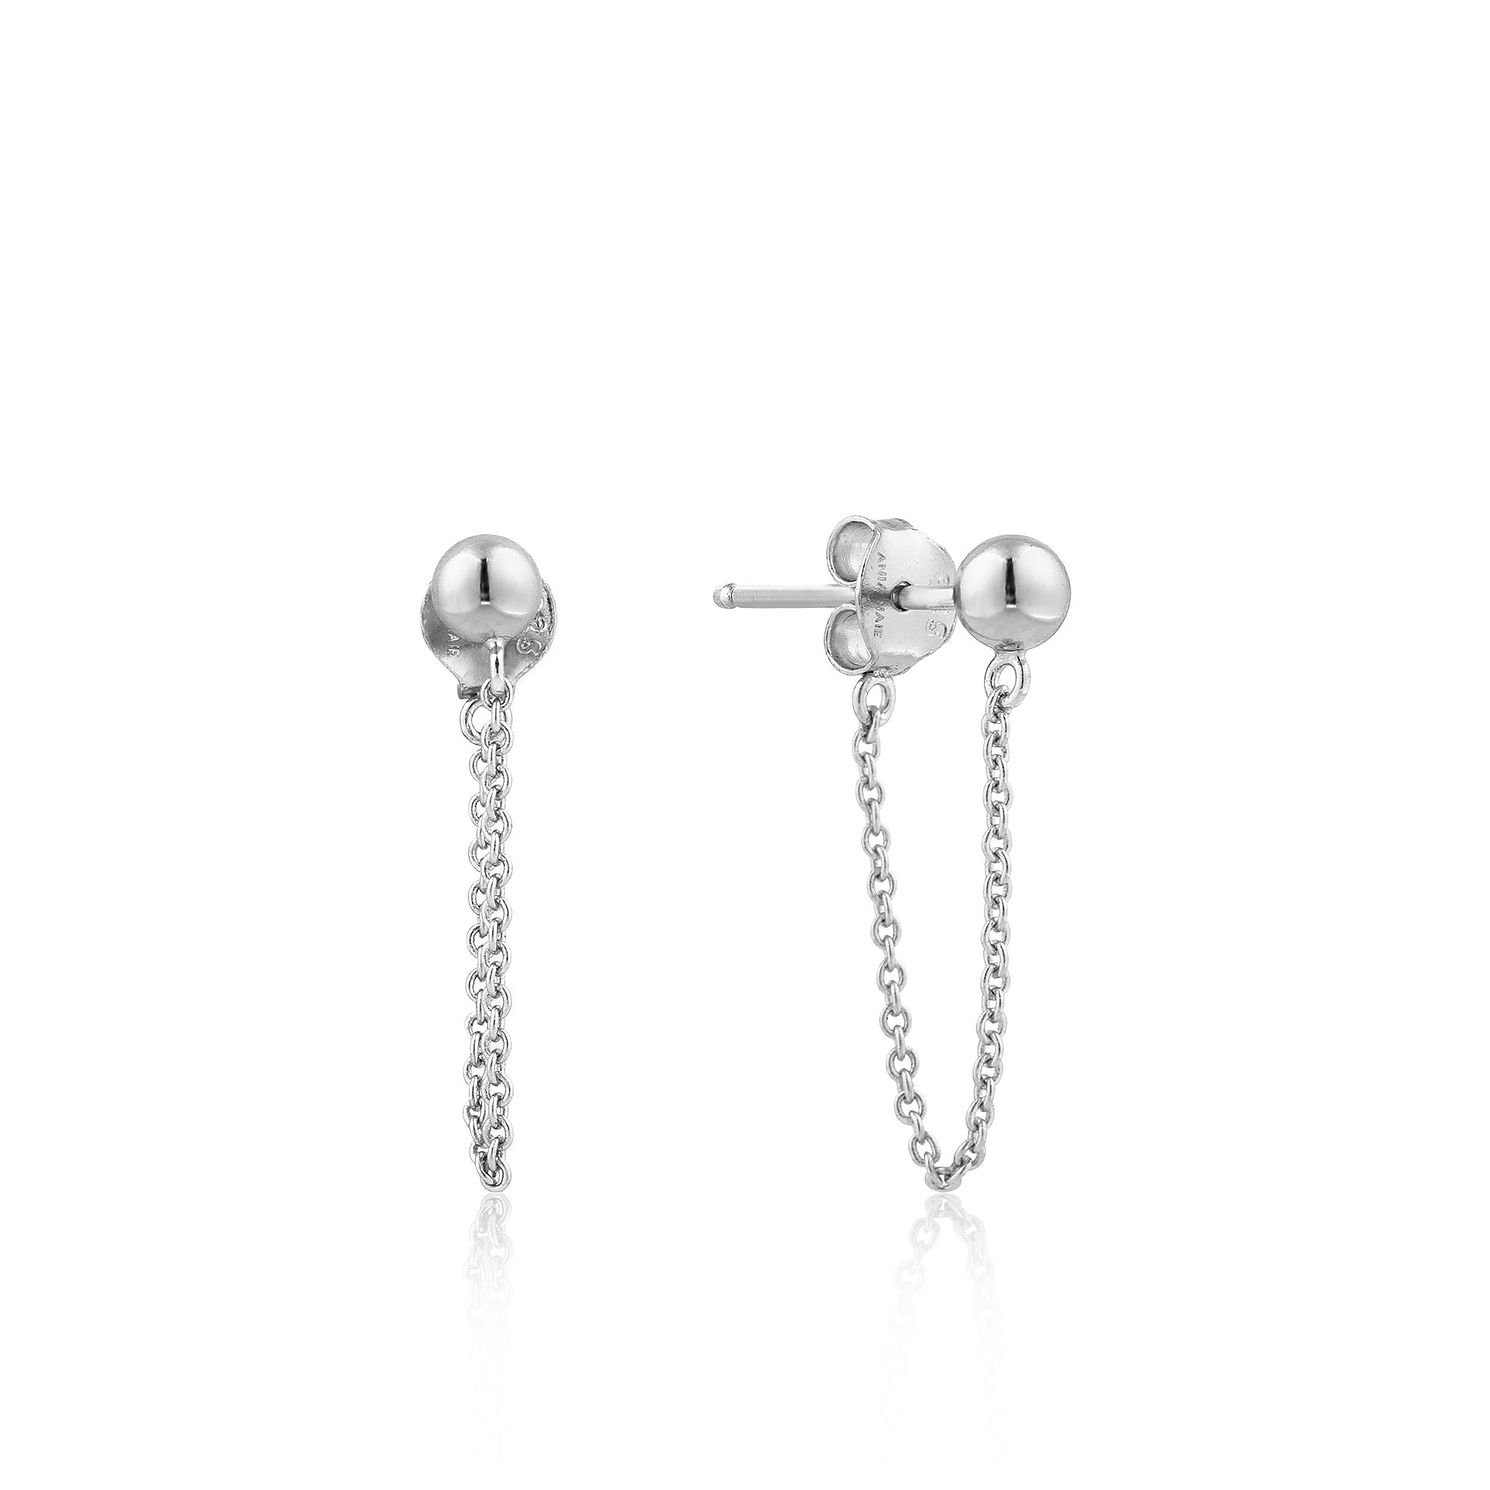 Ania Haie Sterling Silver Modern Chain Stud Earrings - Product number 6006876